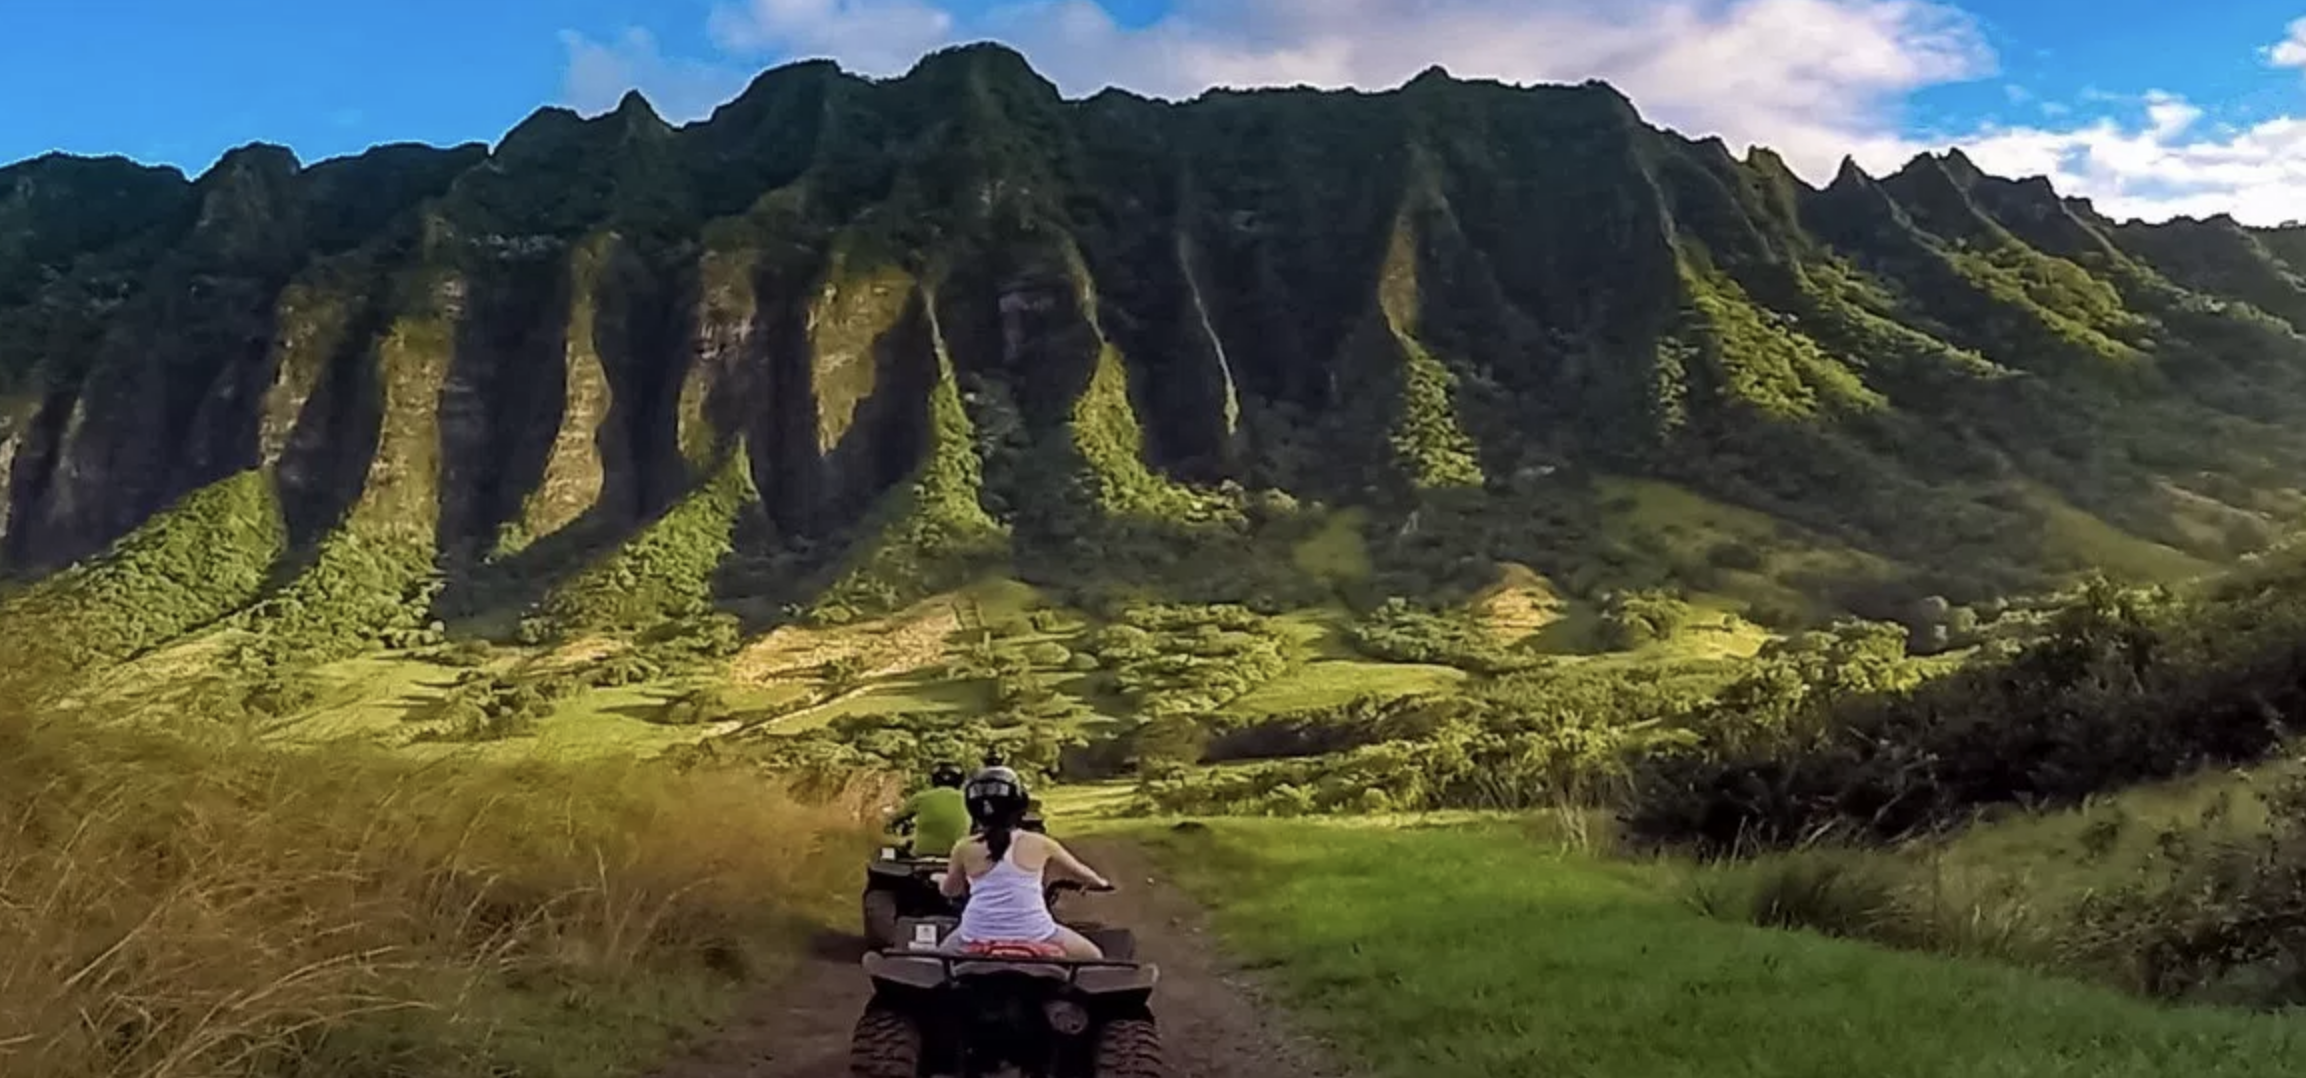 Kualoa Ranch - Choose your own adventure filled with options like ATV, Zip Lining... or relaxing in a hammock on a secret island.